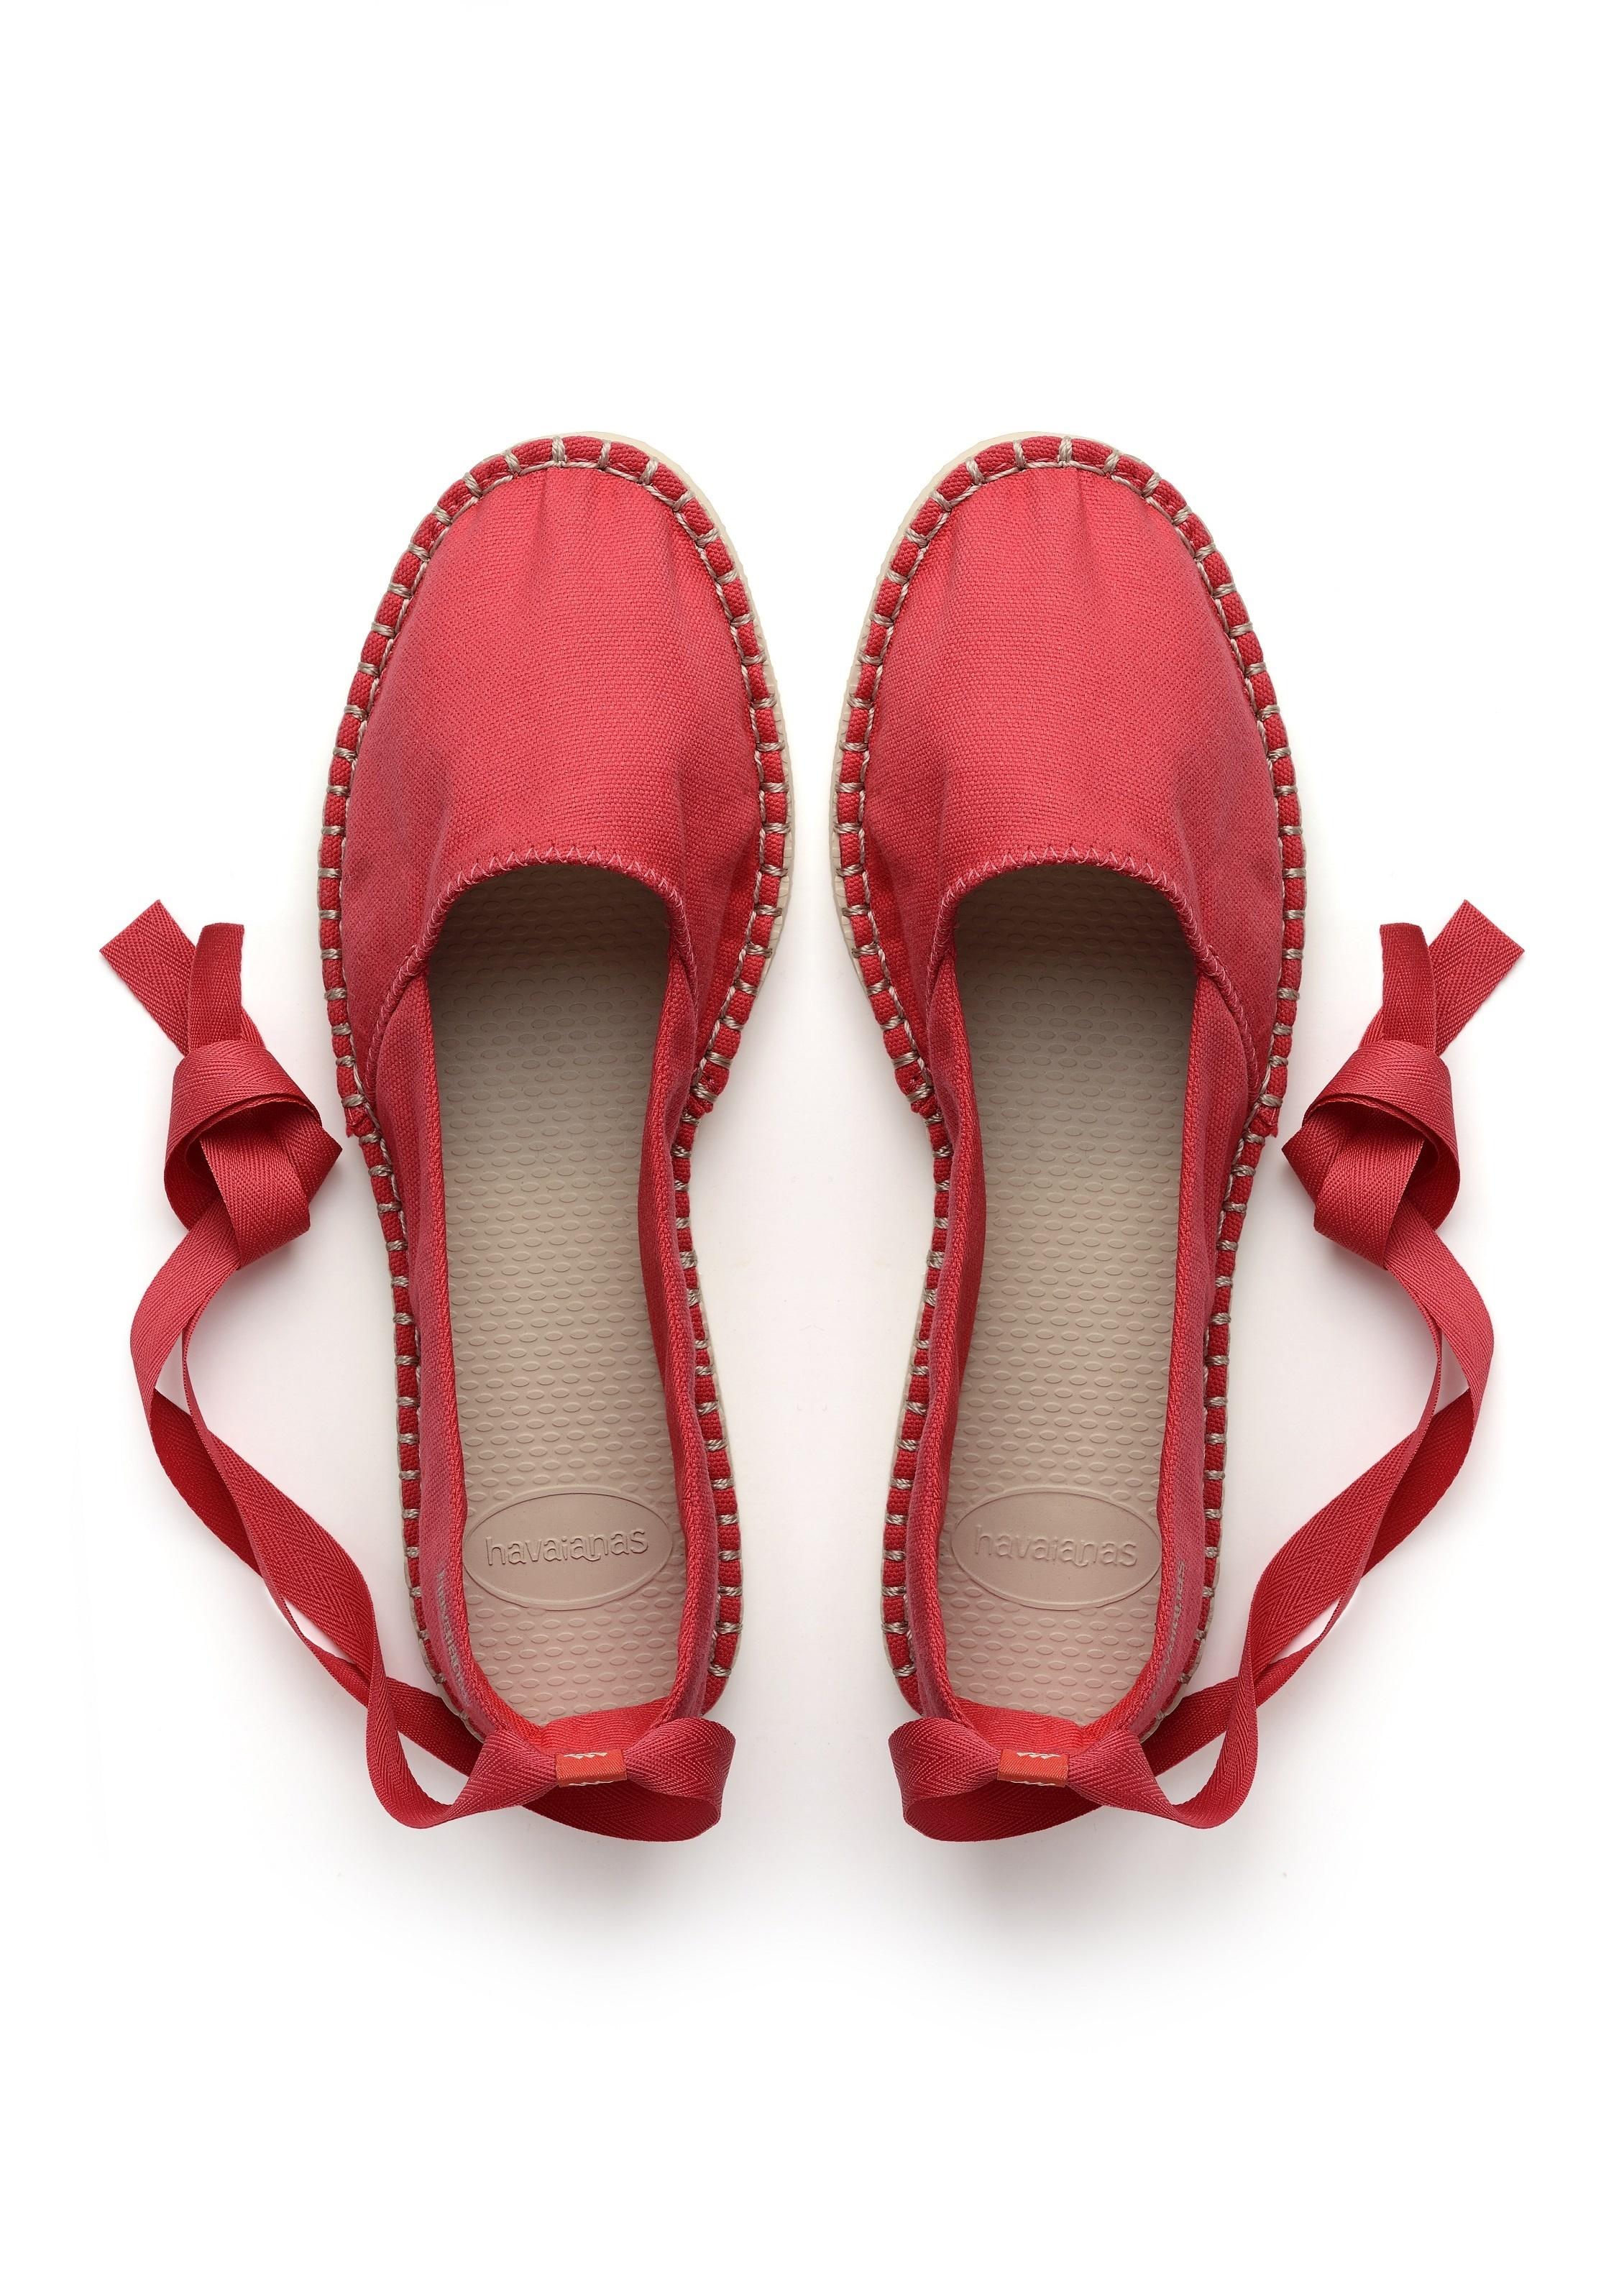 f87689c33 actual size. prev next. Havaianas Origine Slim Espadrille Ruby Red